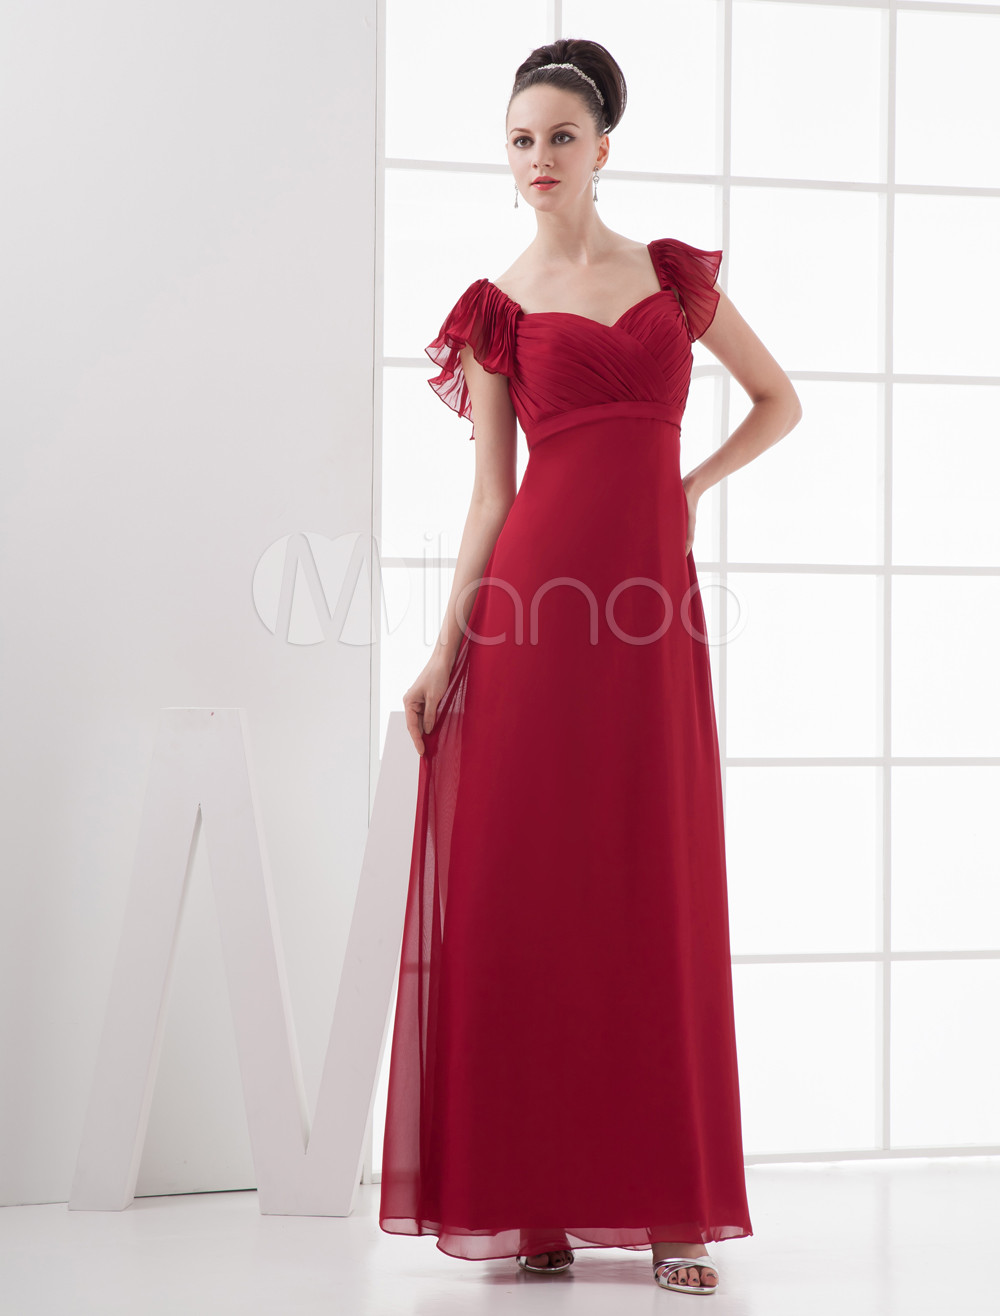 A-line Sweetheart Neck chiffon Floor Length Flower Bridesmaid Dress